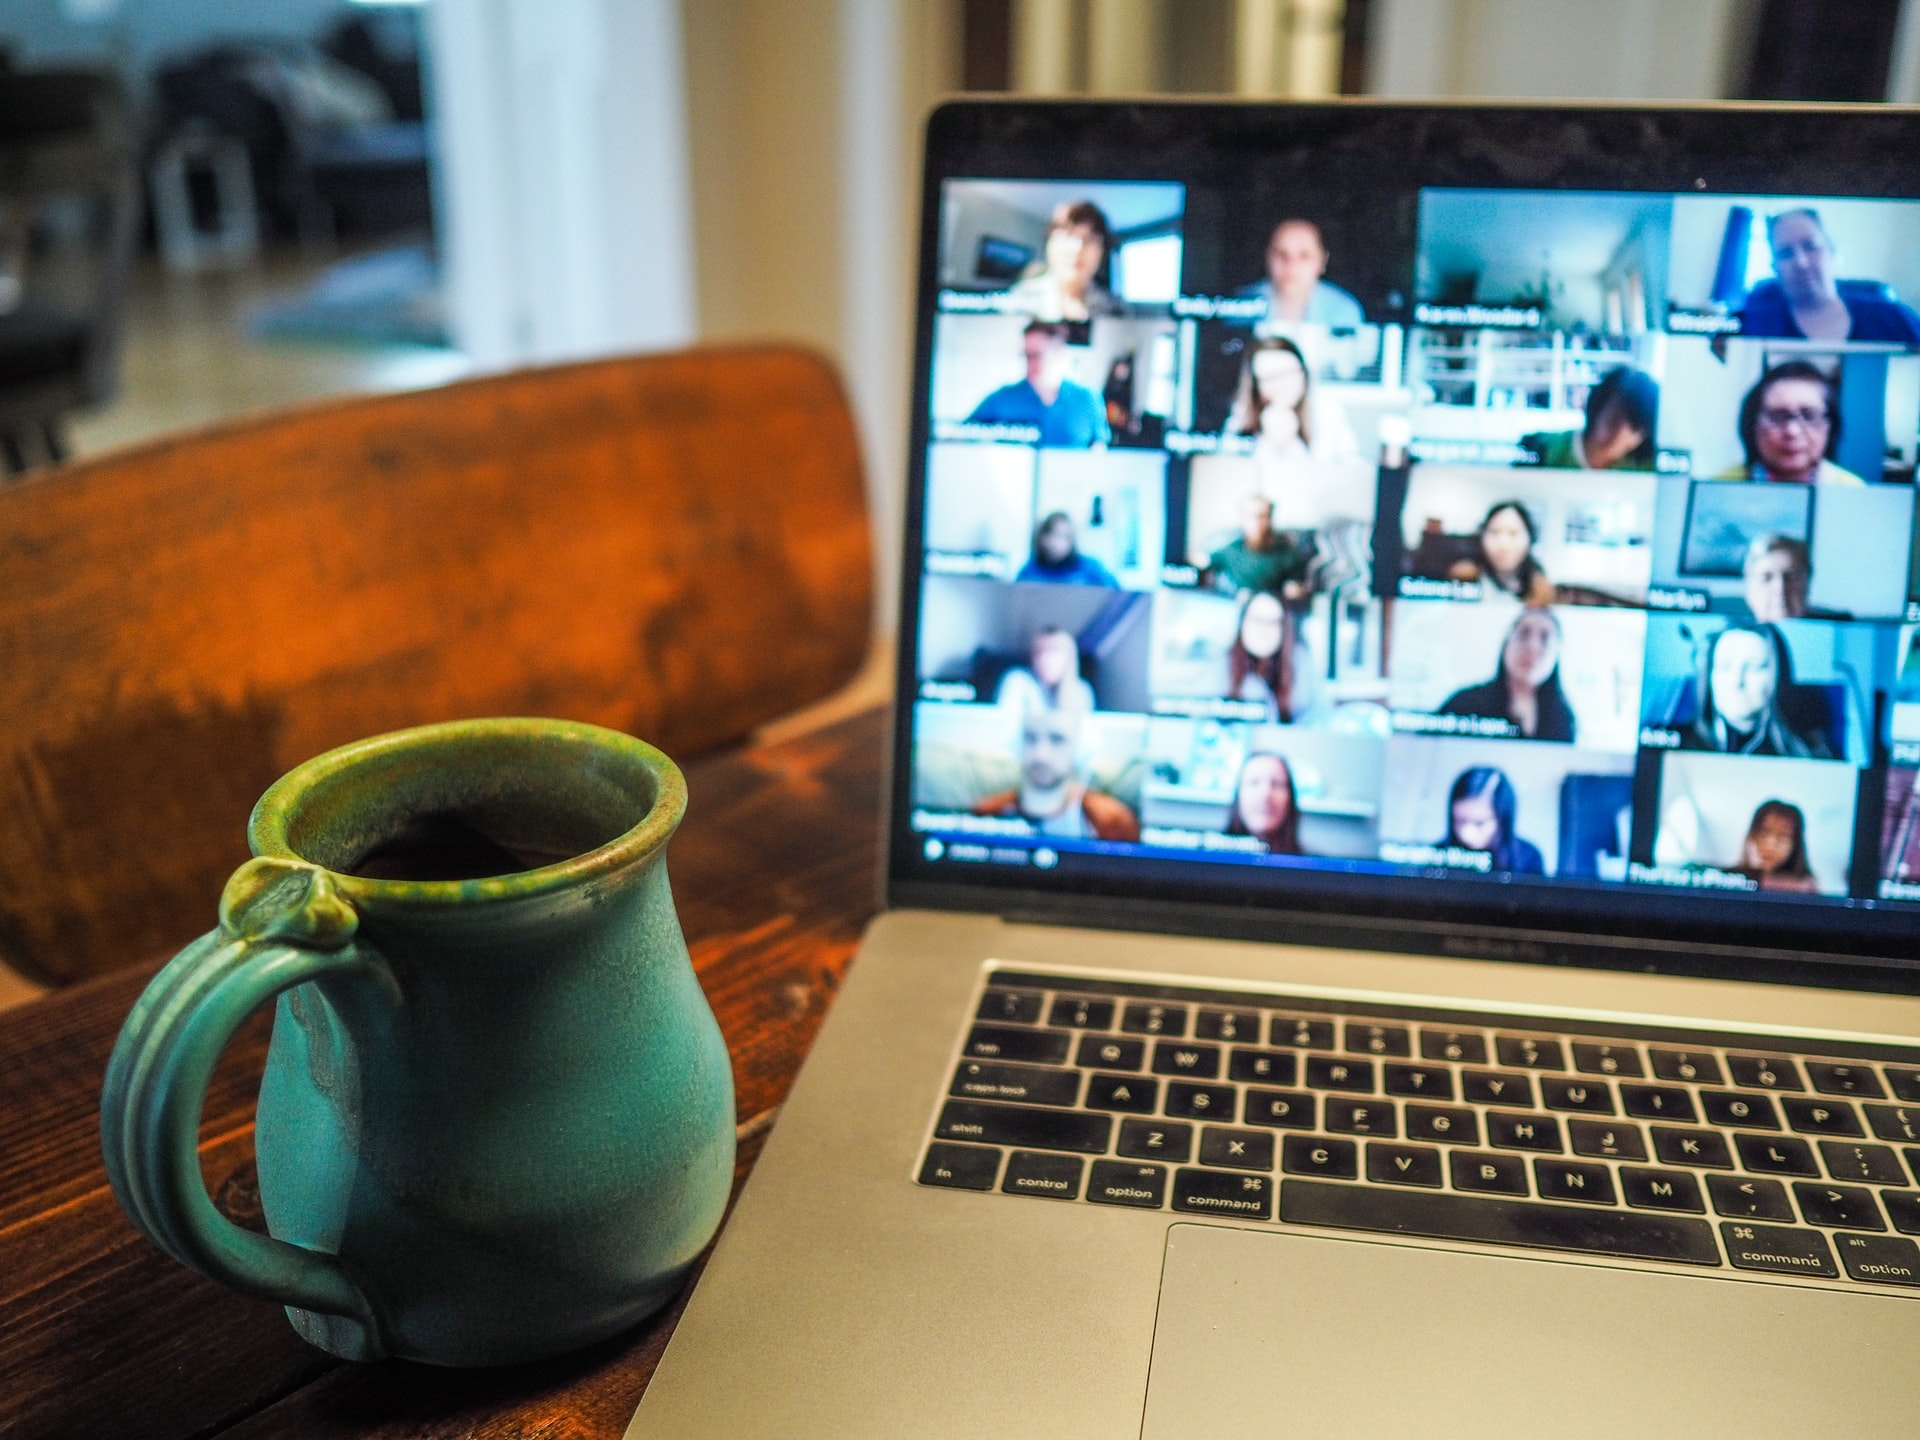 A jug next to a laptop showing a Zoom meeting.